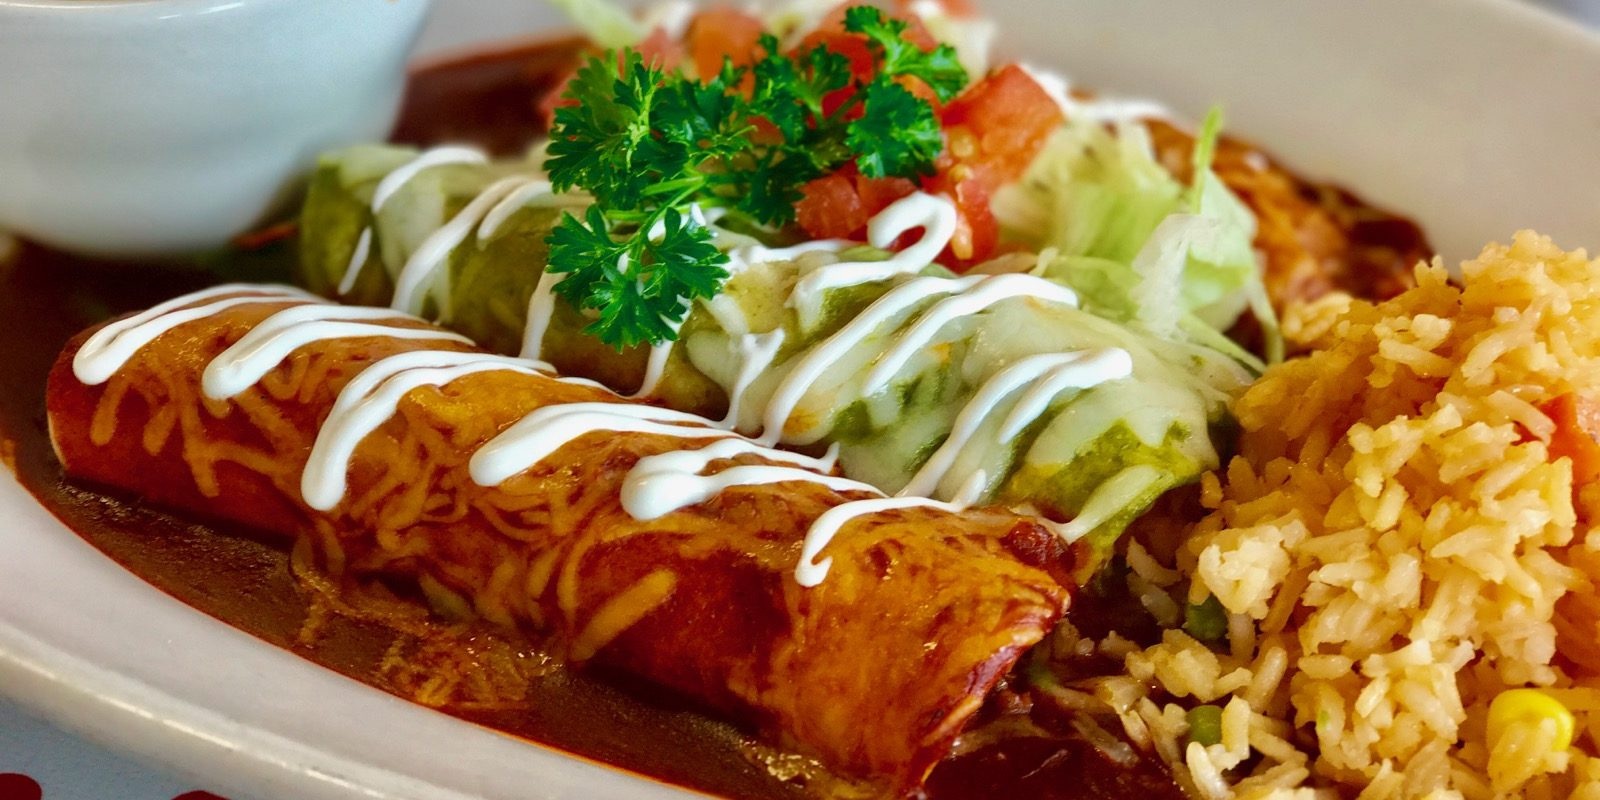 https://twtx.co/wp-content/uploads/2017/07/Ritas-Enchiladas-1600x800.jpg